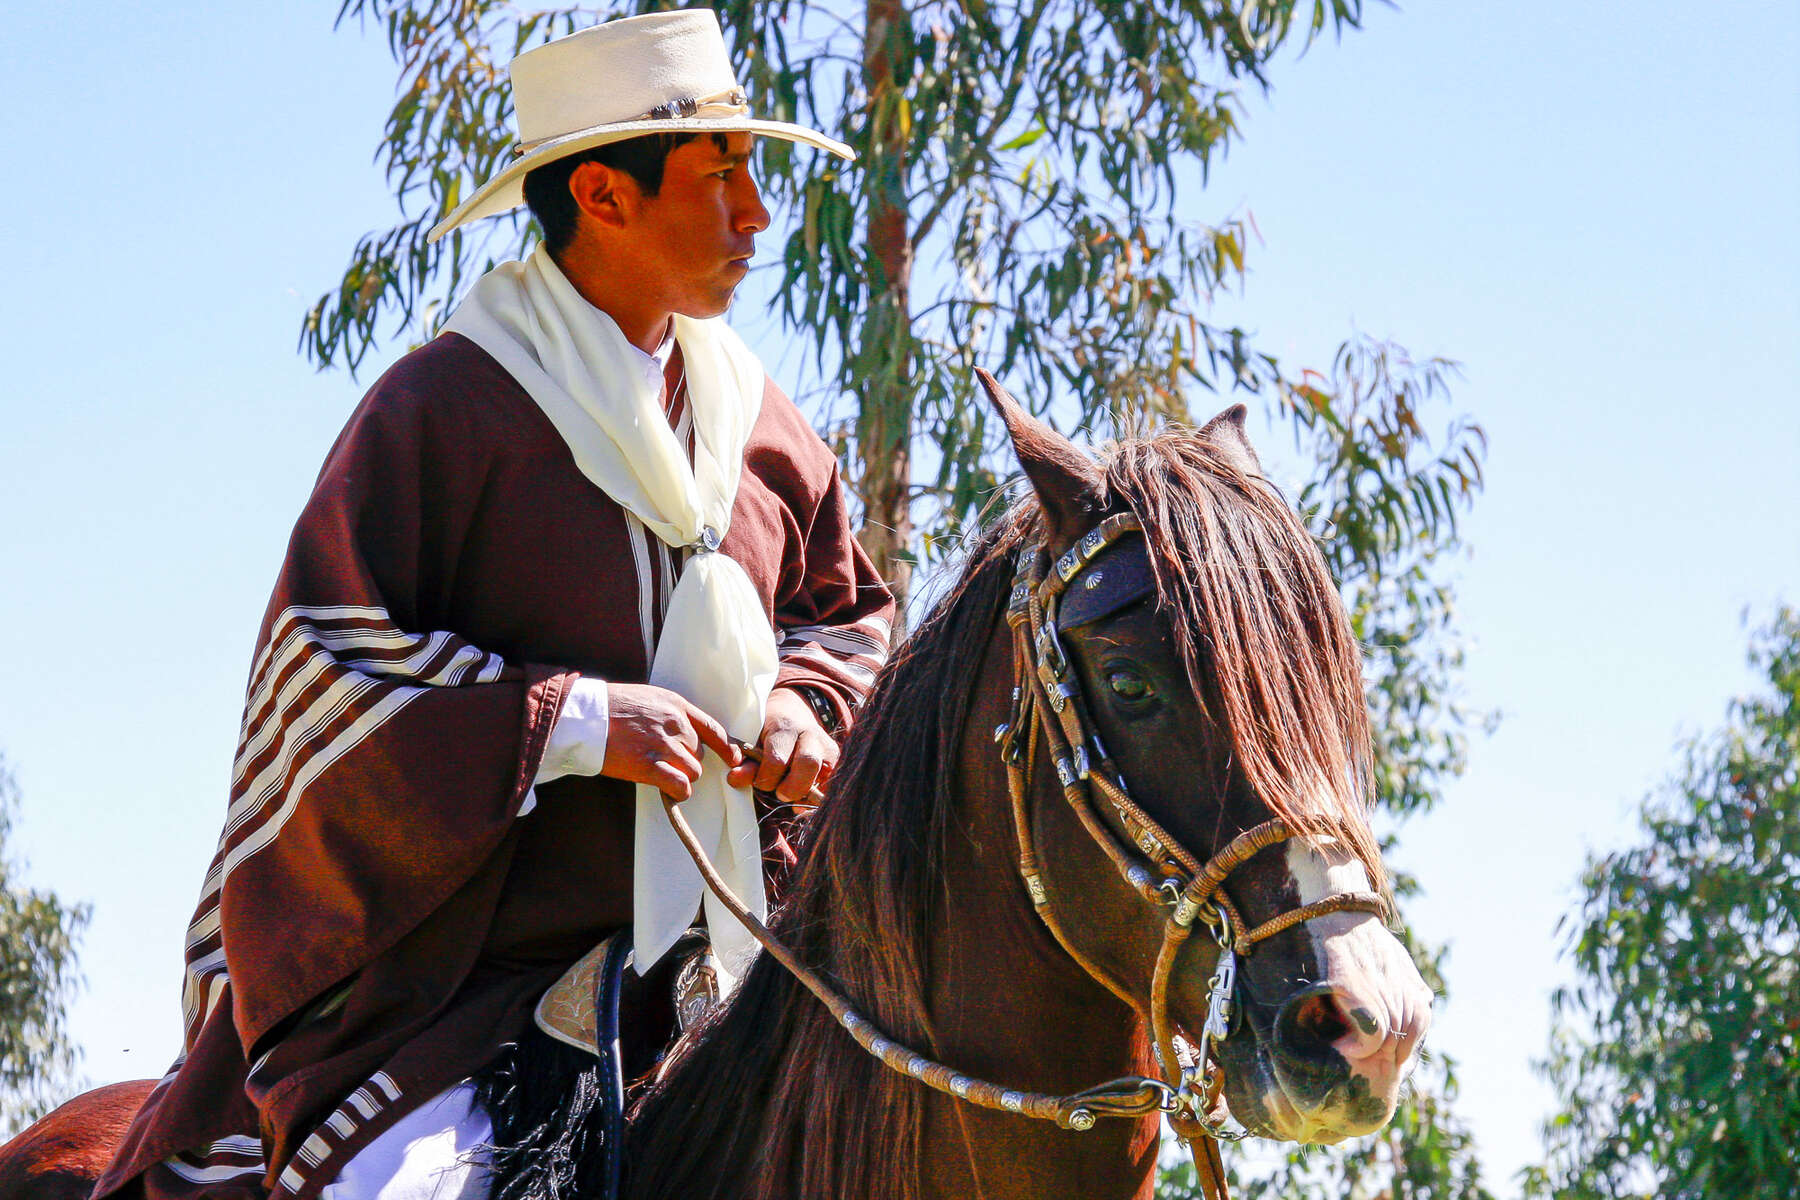 Discover the Colca Canyon trail on horseback